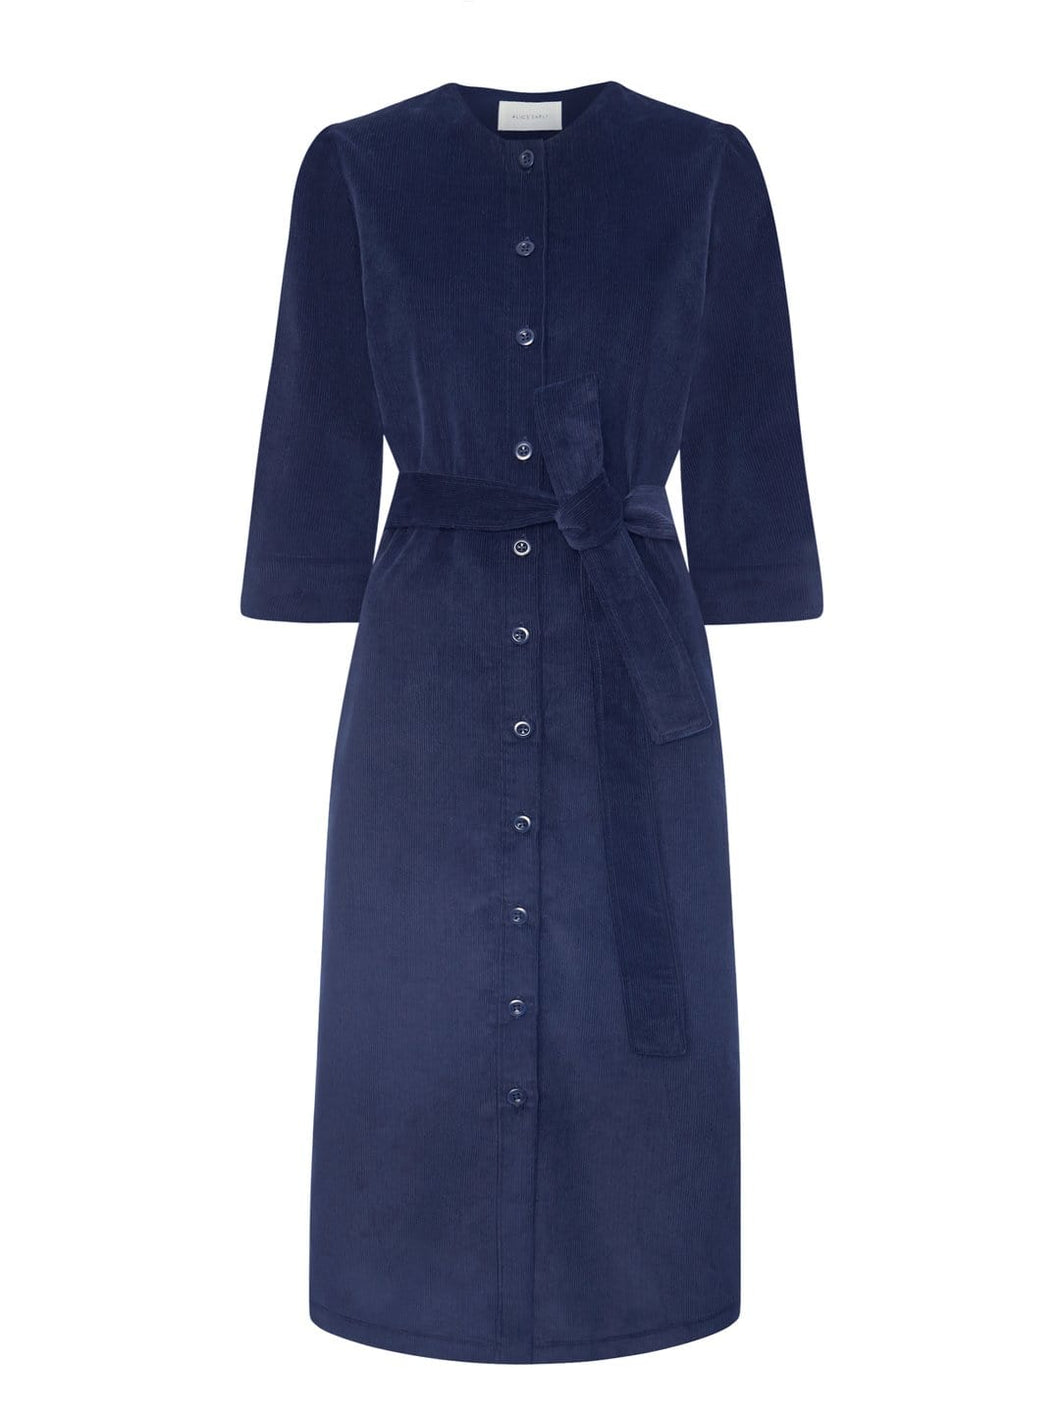 Navy Rhianon Dress